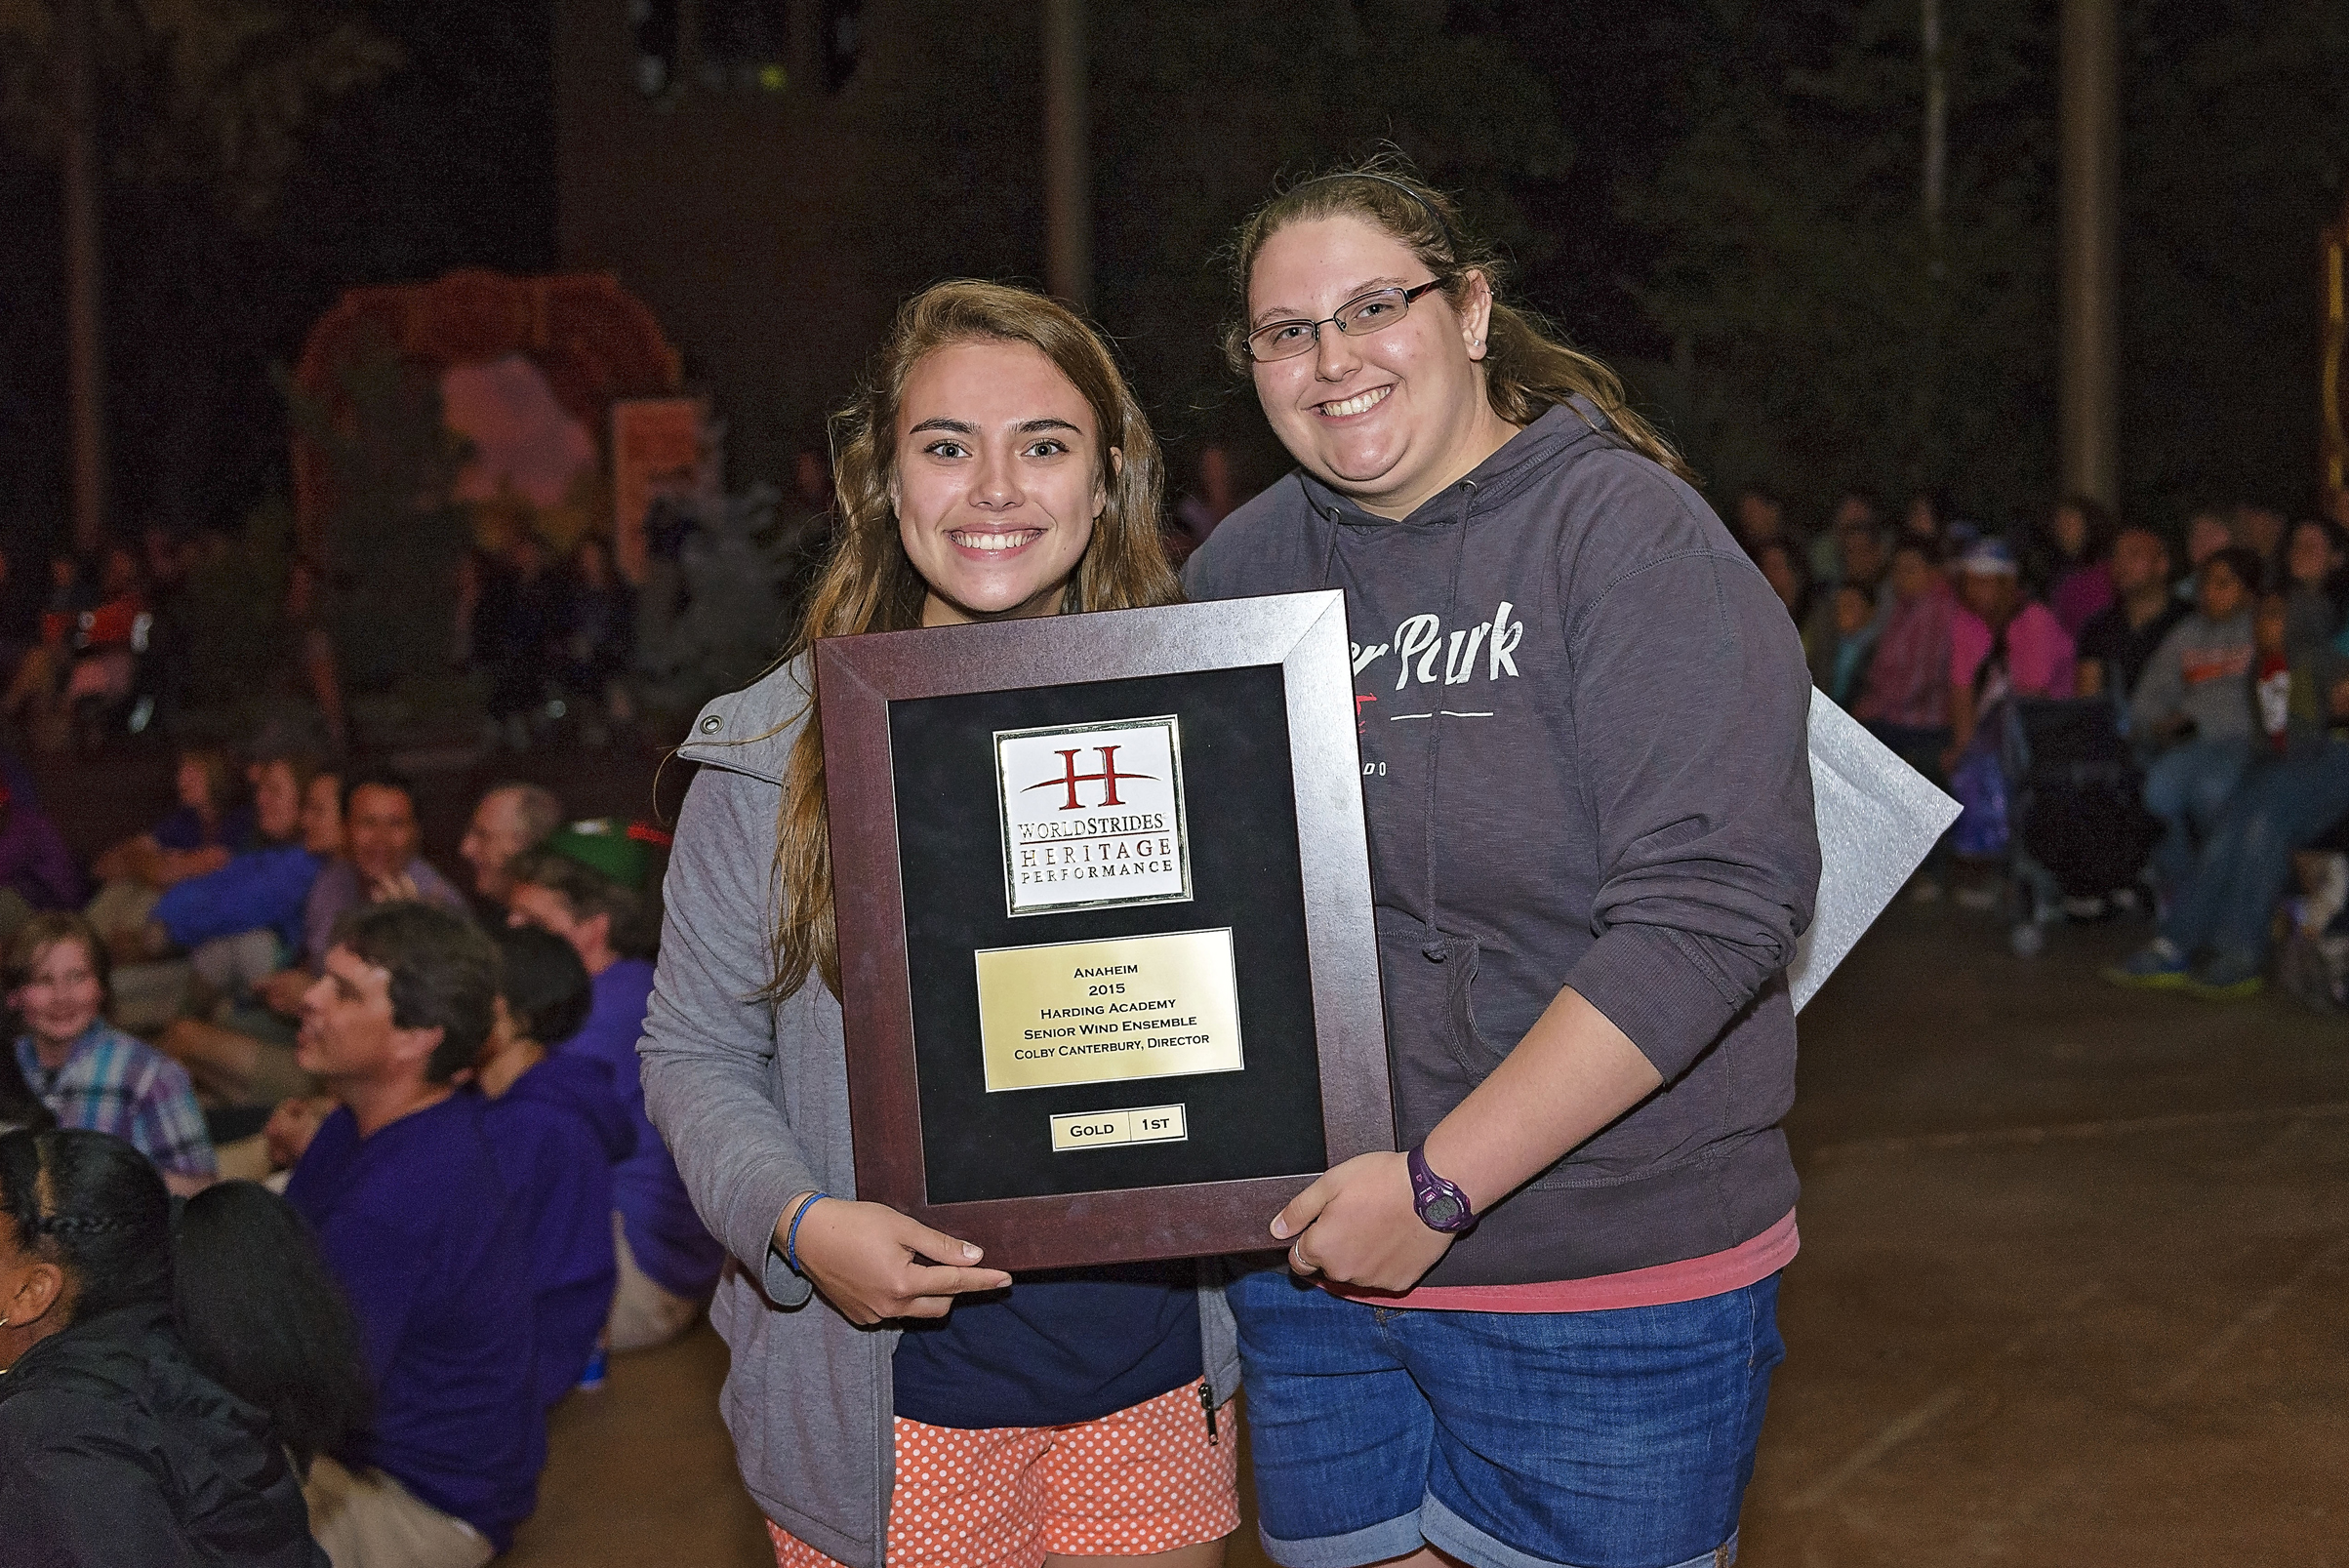 Harding SWE received Gold First Place and Best Overall Band at the Festival.